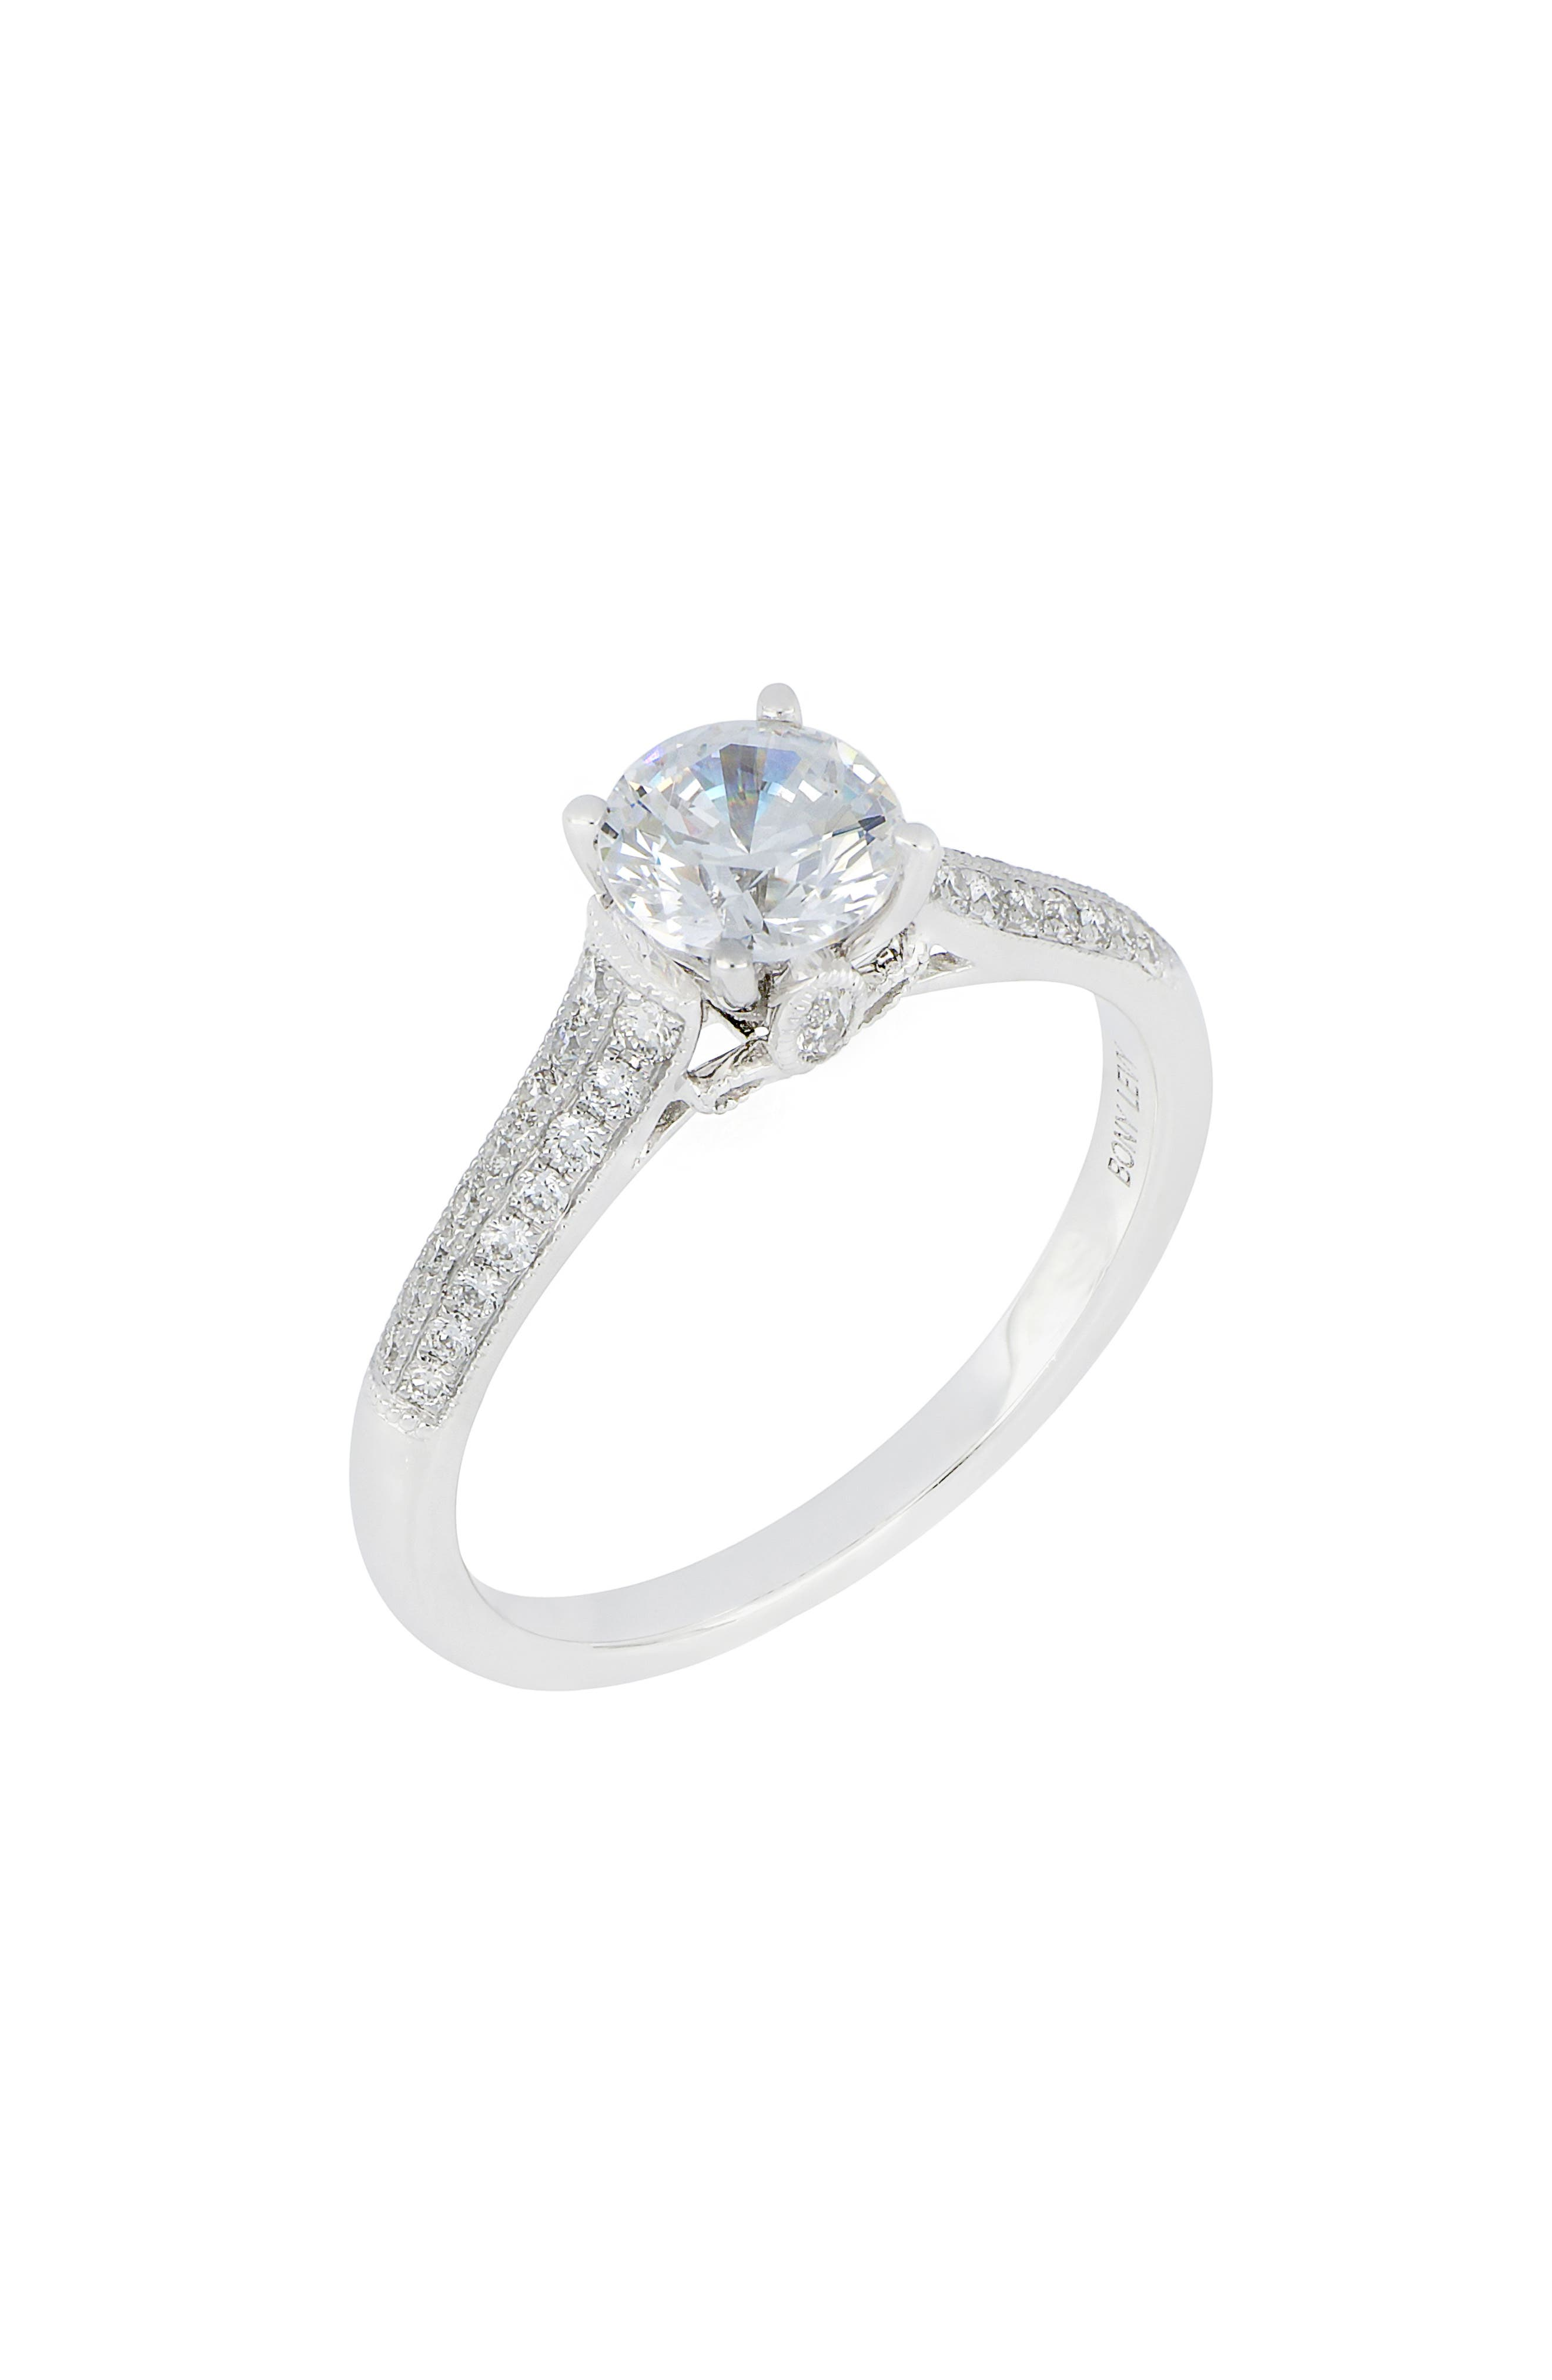 Tapered Cathedral Round Engagement Ring Setting (Nordstrom Exclusive)